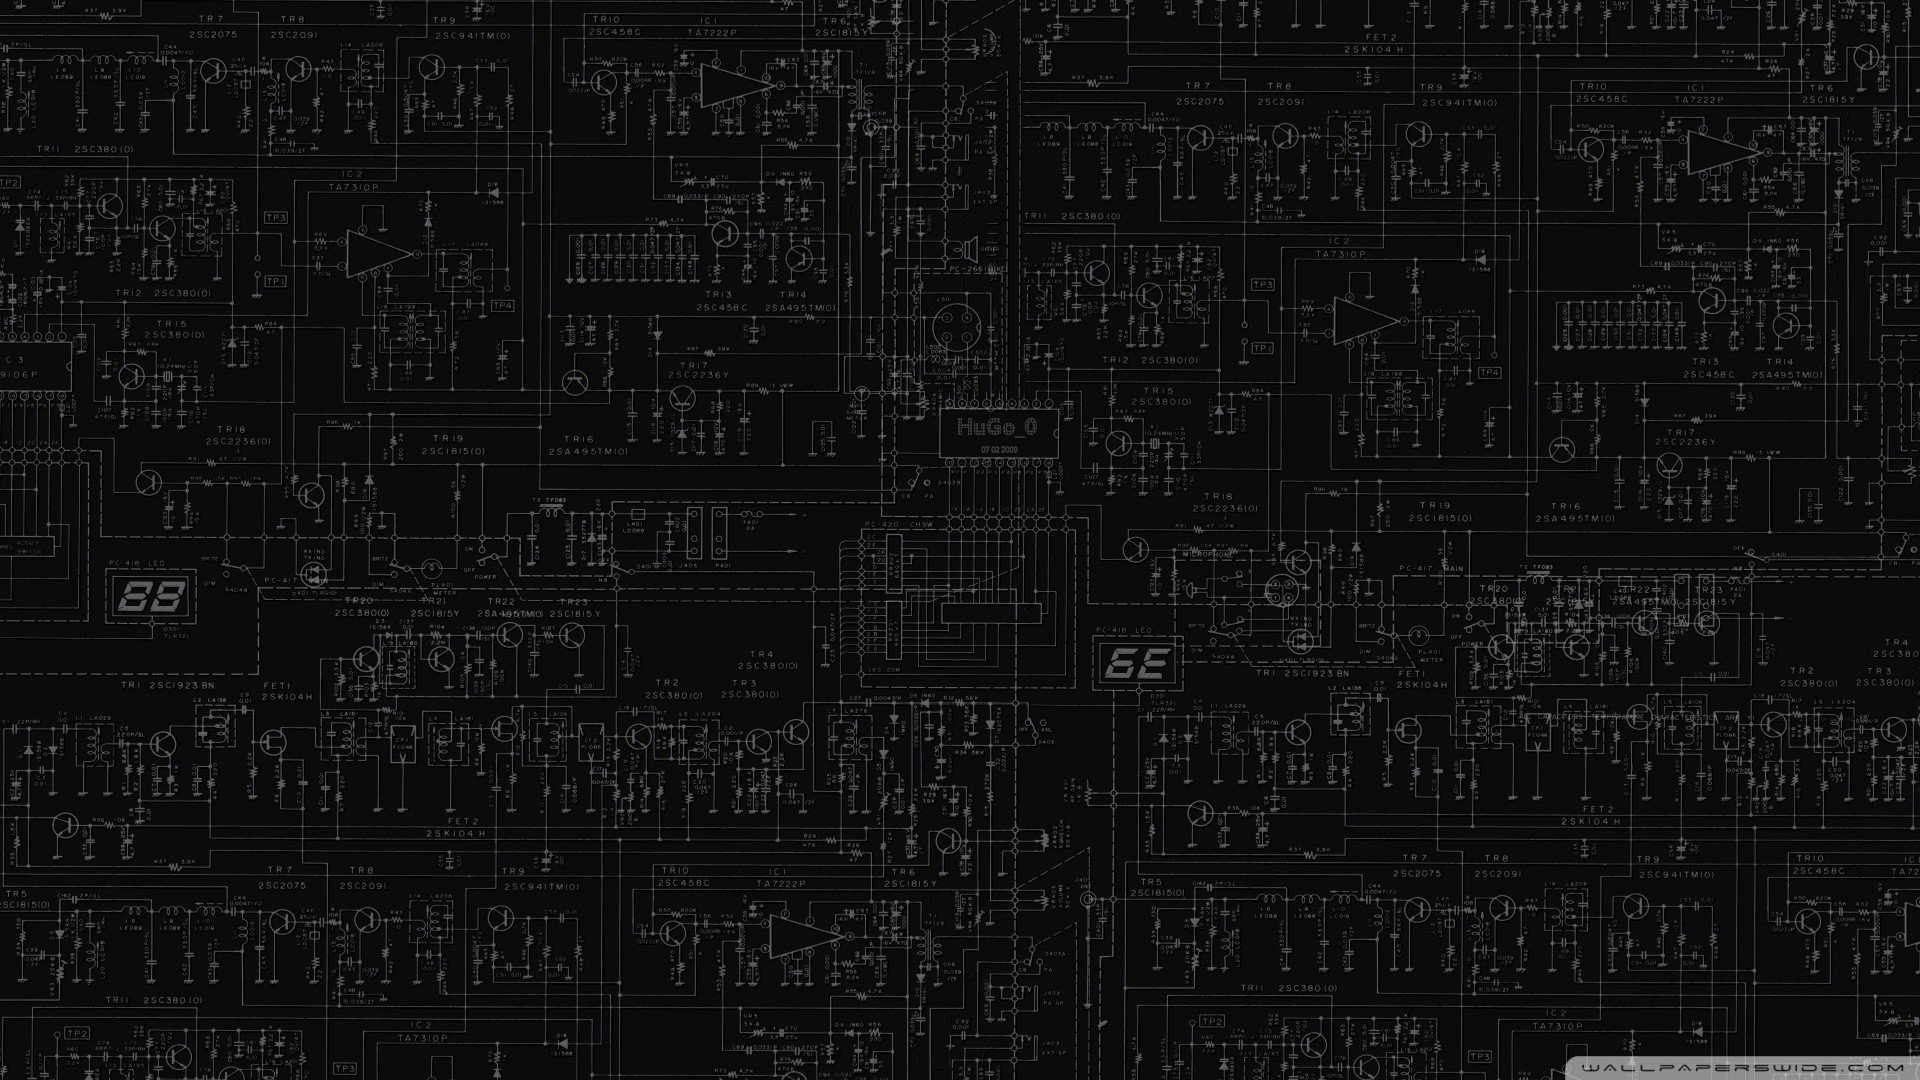 circuits wallpaper 1920x1080 300406 wallpaperupMotherboards Circuits 3d Circuit Board 1920x1080 Wallpaper Download #18